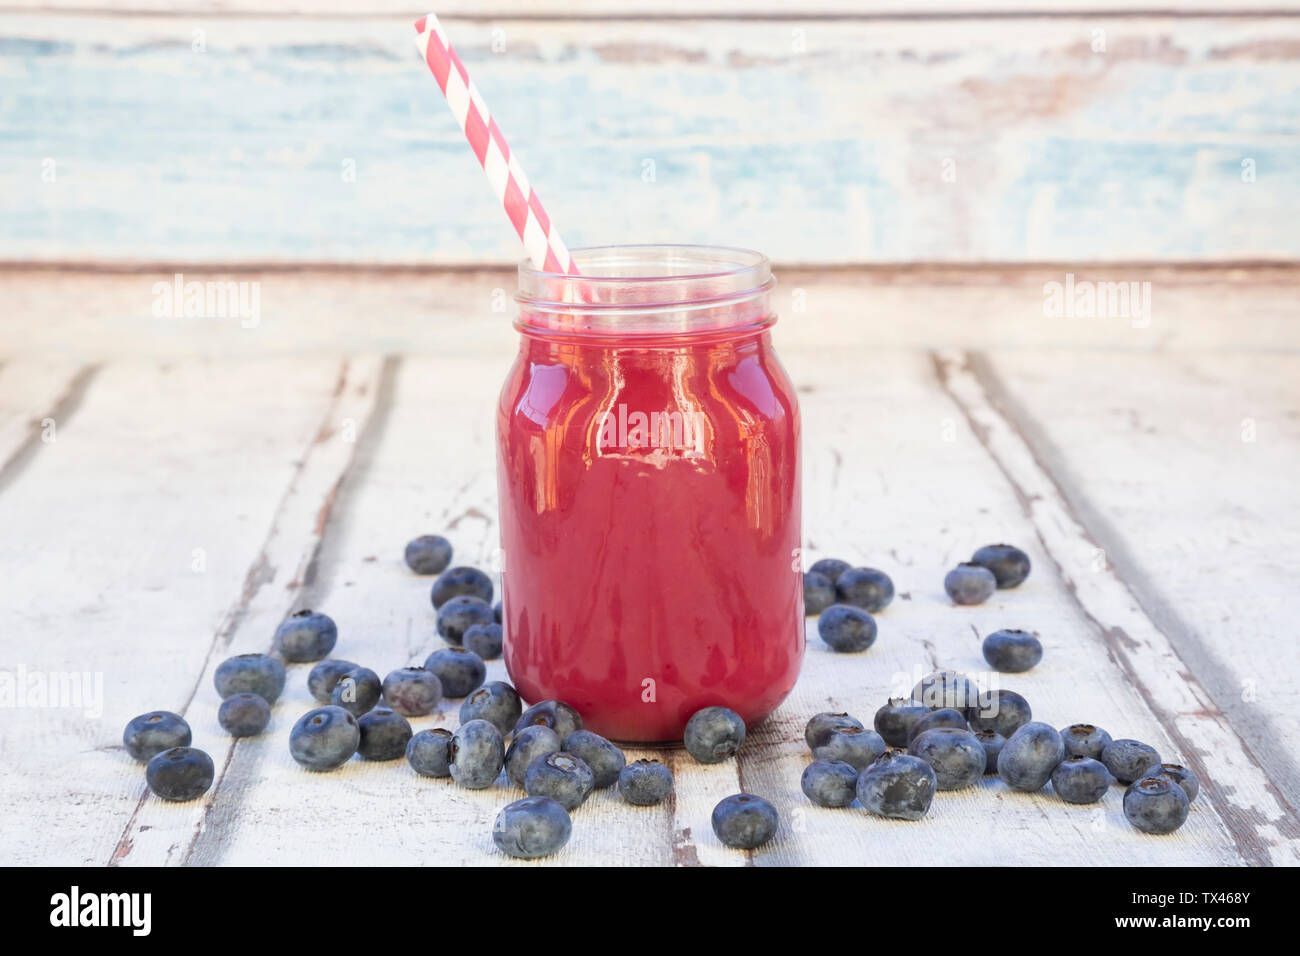 Blueberry smoothie in glass with drinking straws - Stock Image